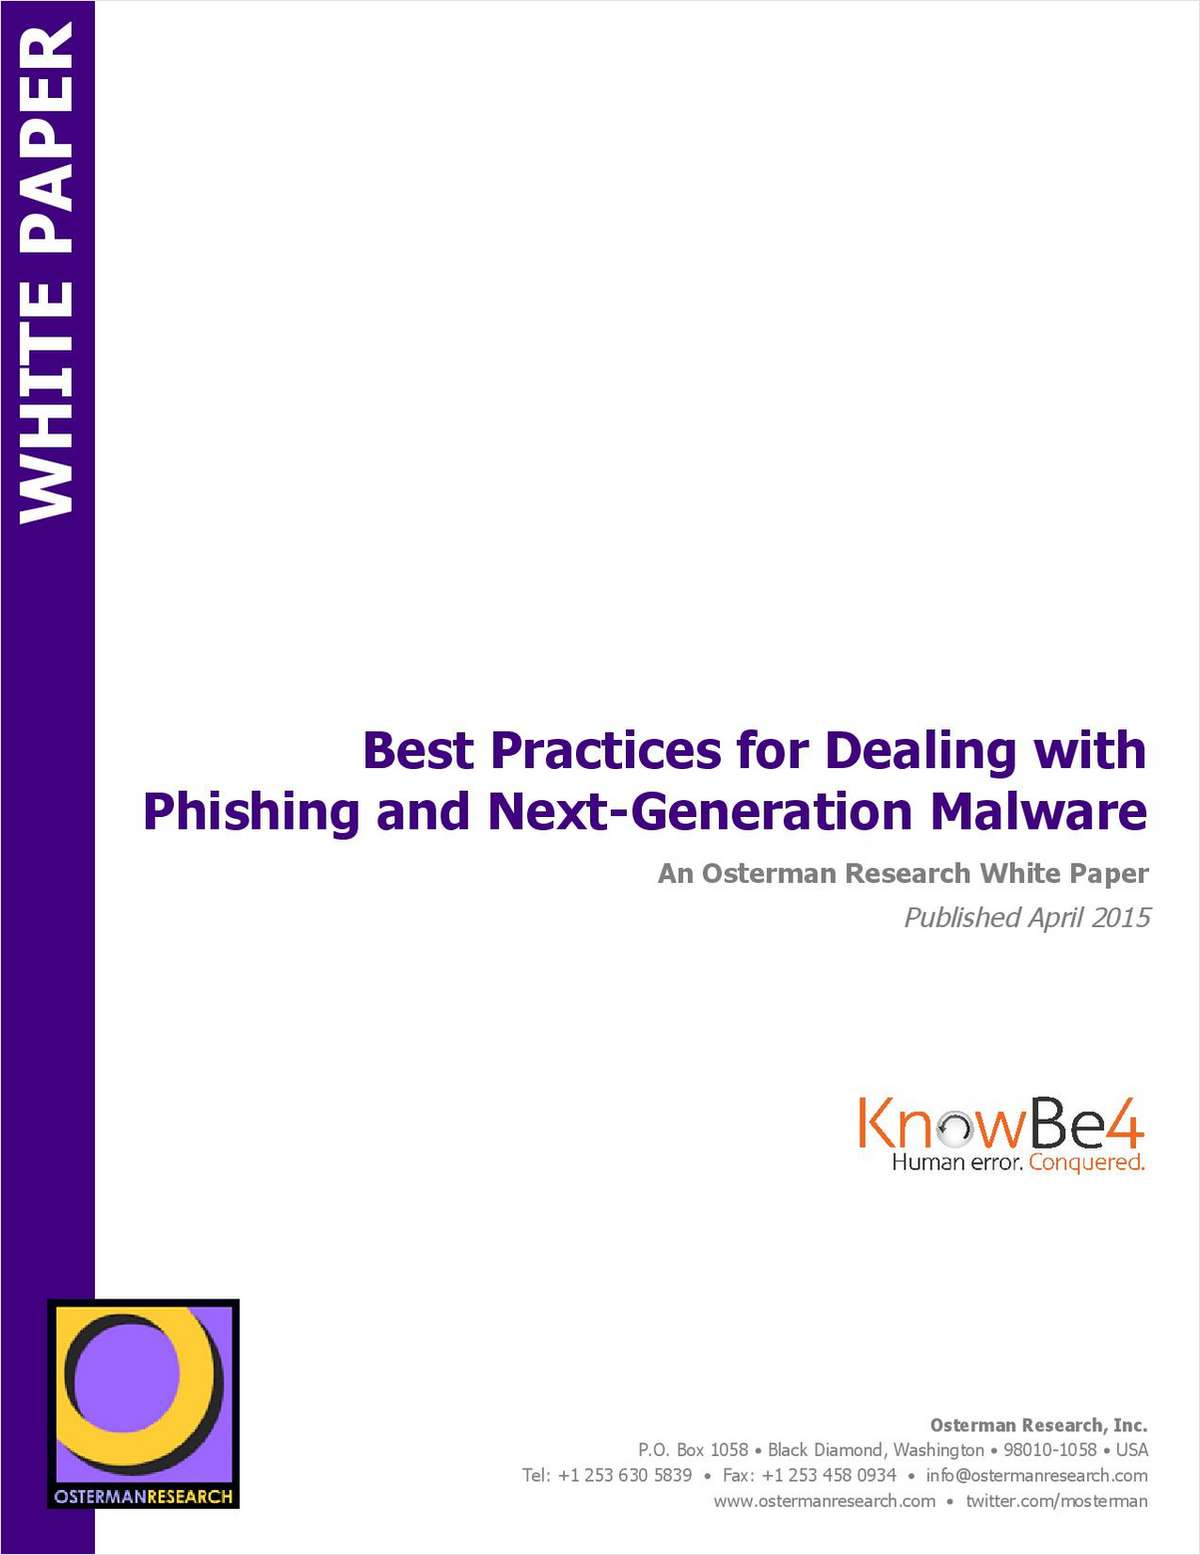 How to Deal with Stealthier Phishing and Malware Attacks